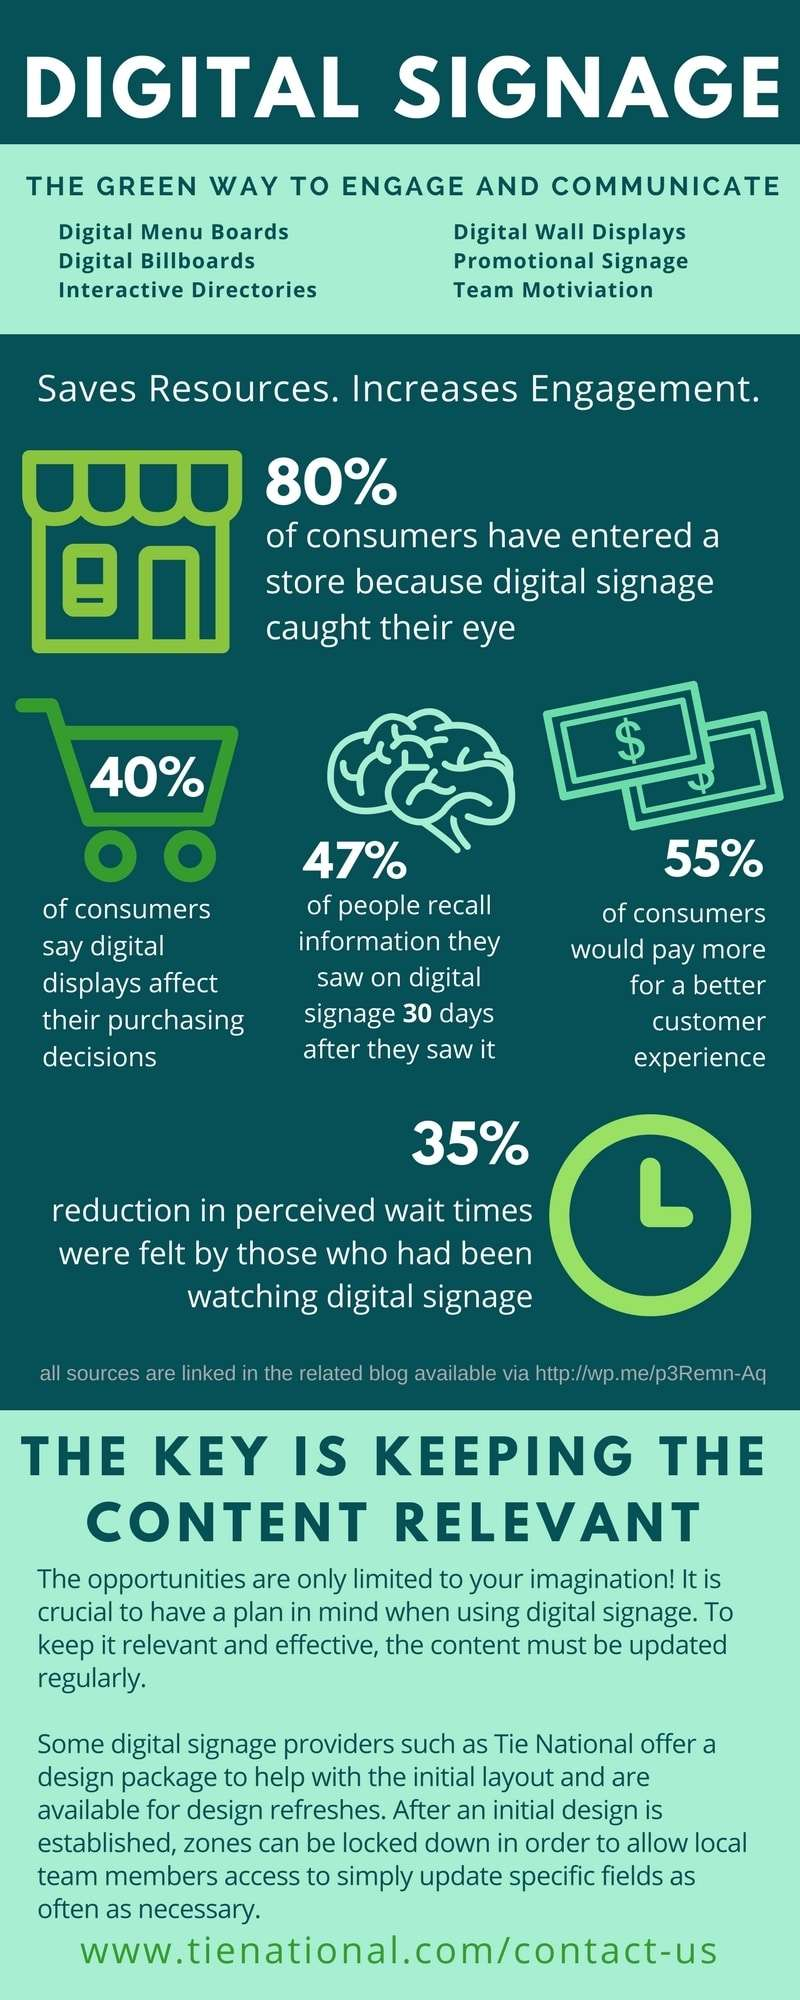 Digital Signage Infographic | Tie National